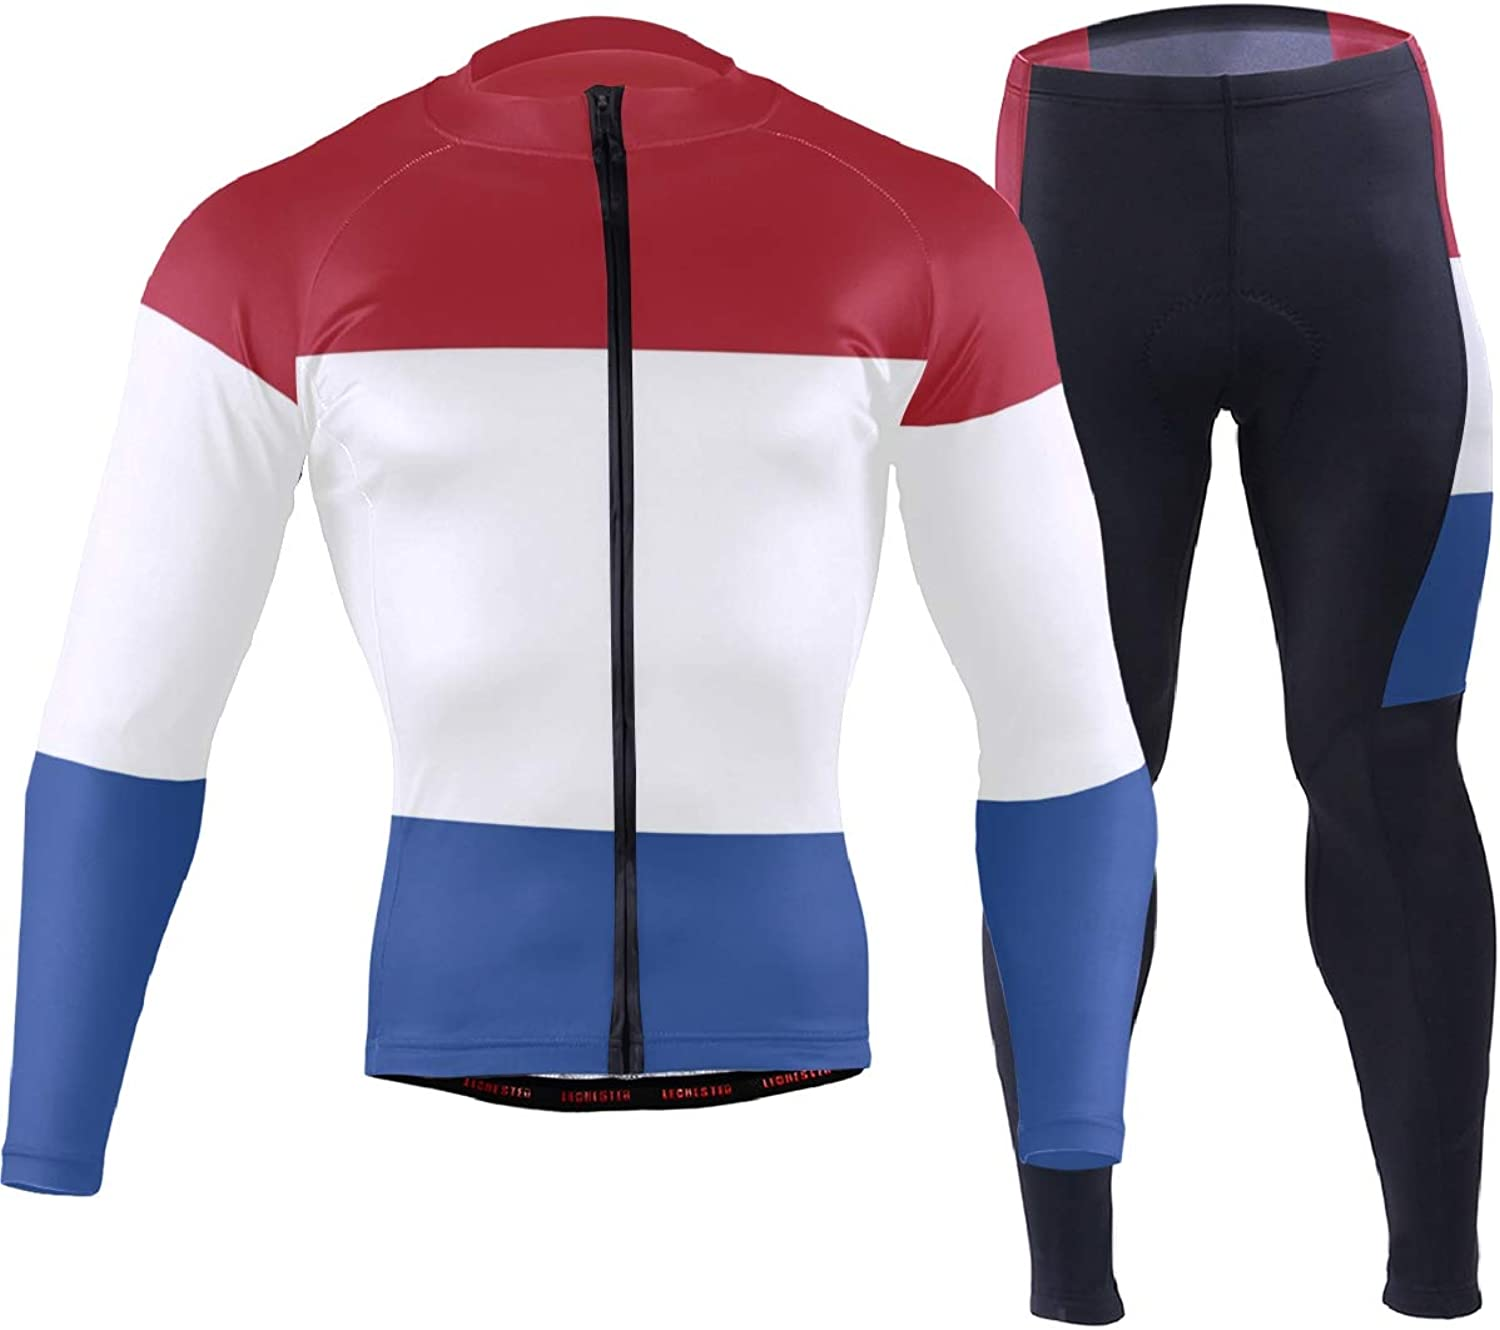 Men's Cycling Jersey Long Sleeve with 3 Rear Pockets Suit Netherlands Flag